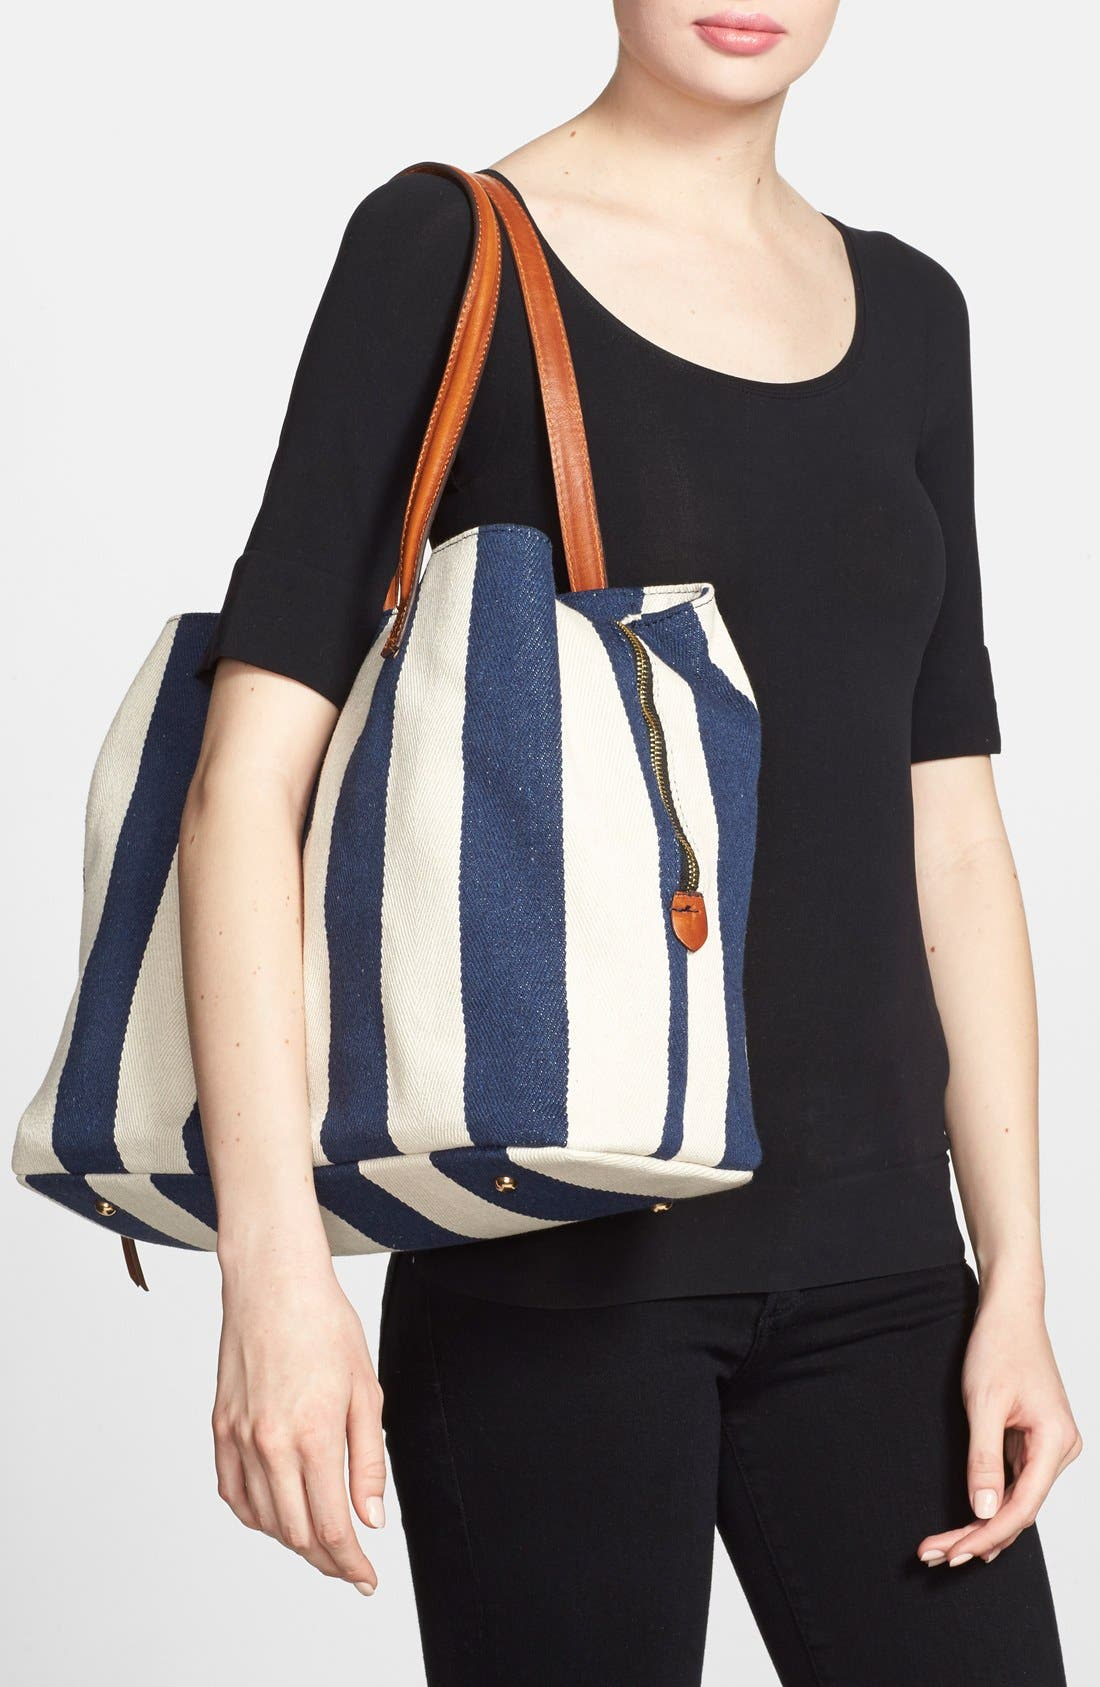 SOLE SOCIETY,                             'Oversize Millie' Stripe Print Tote,                             Alternate thumbnail 7, color,                             NAVY CREAM